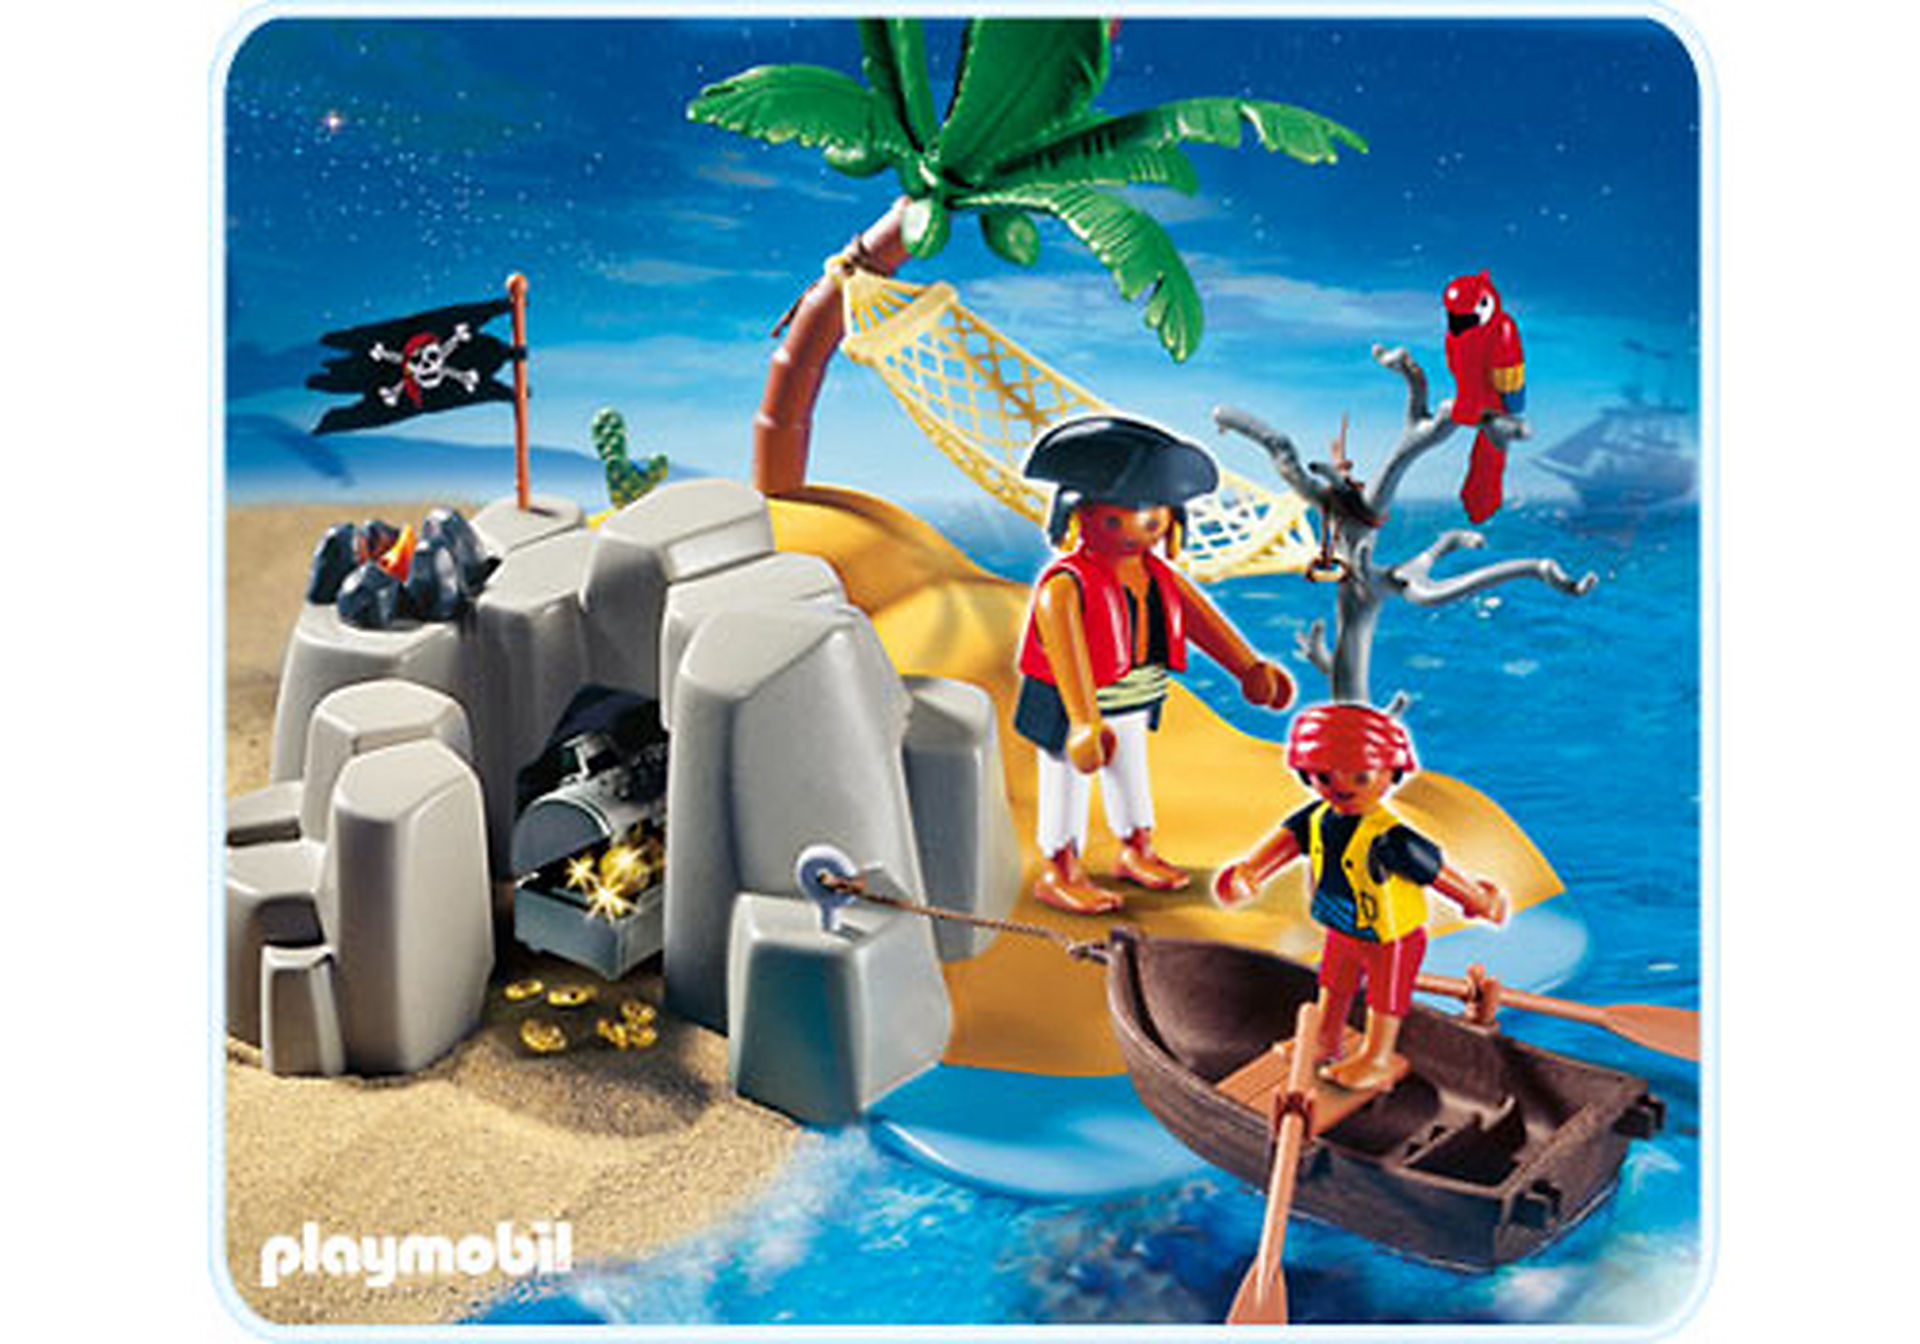 http://media.playmobil.com/i/playmobil/4139-A_product_detail/CompactSet Pirate